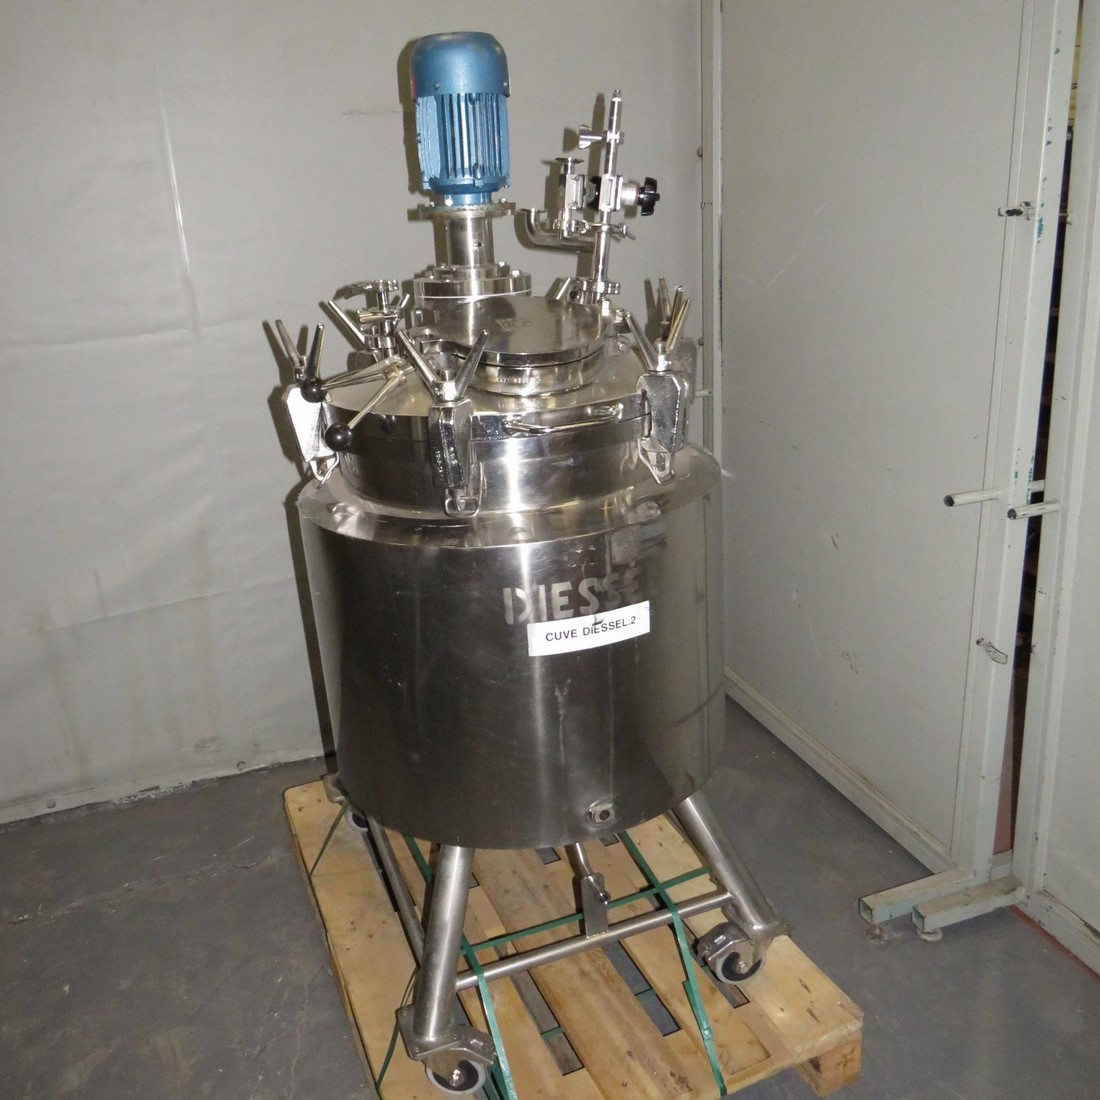 R6MA6177 Stainless steel DIESSEL Mixing tank - 140 Liters - Double jacket